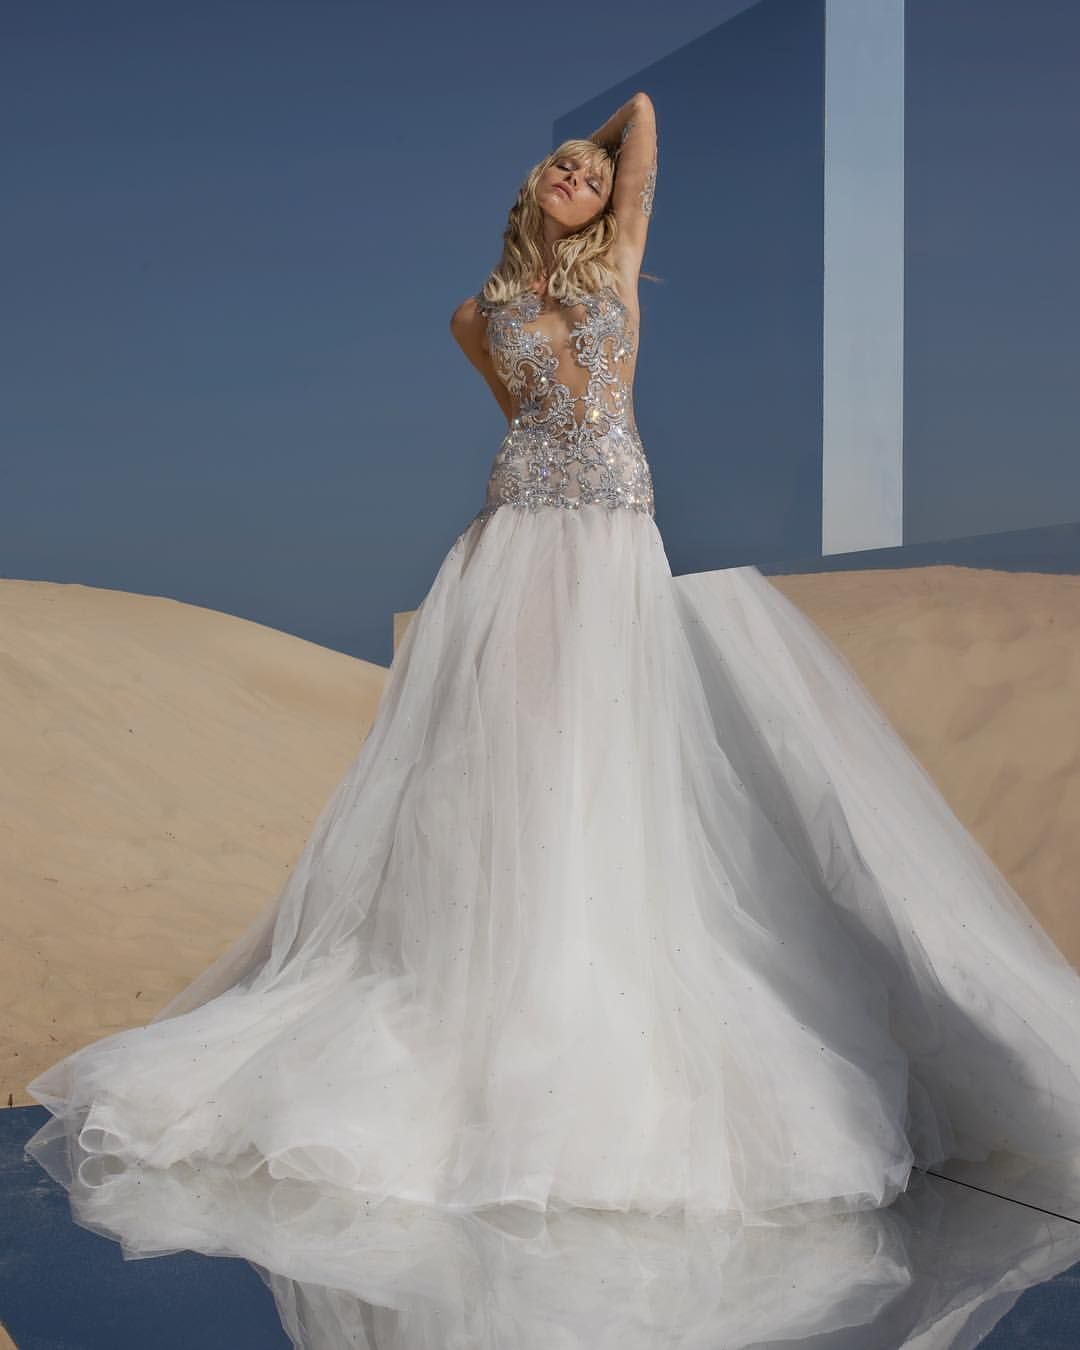 20 Most Perfect Bridal Gowns This Year: The Heart Is One Of The Most Powerful Muscles We Have